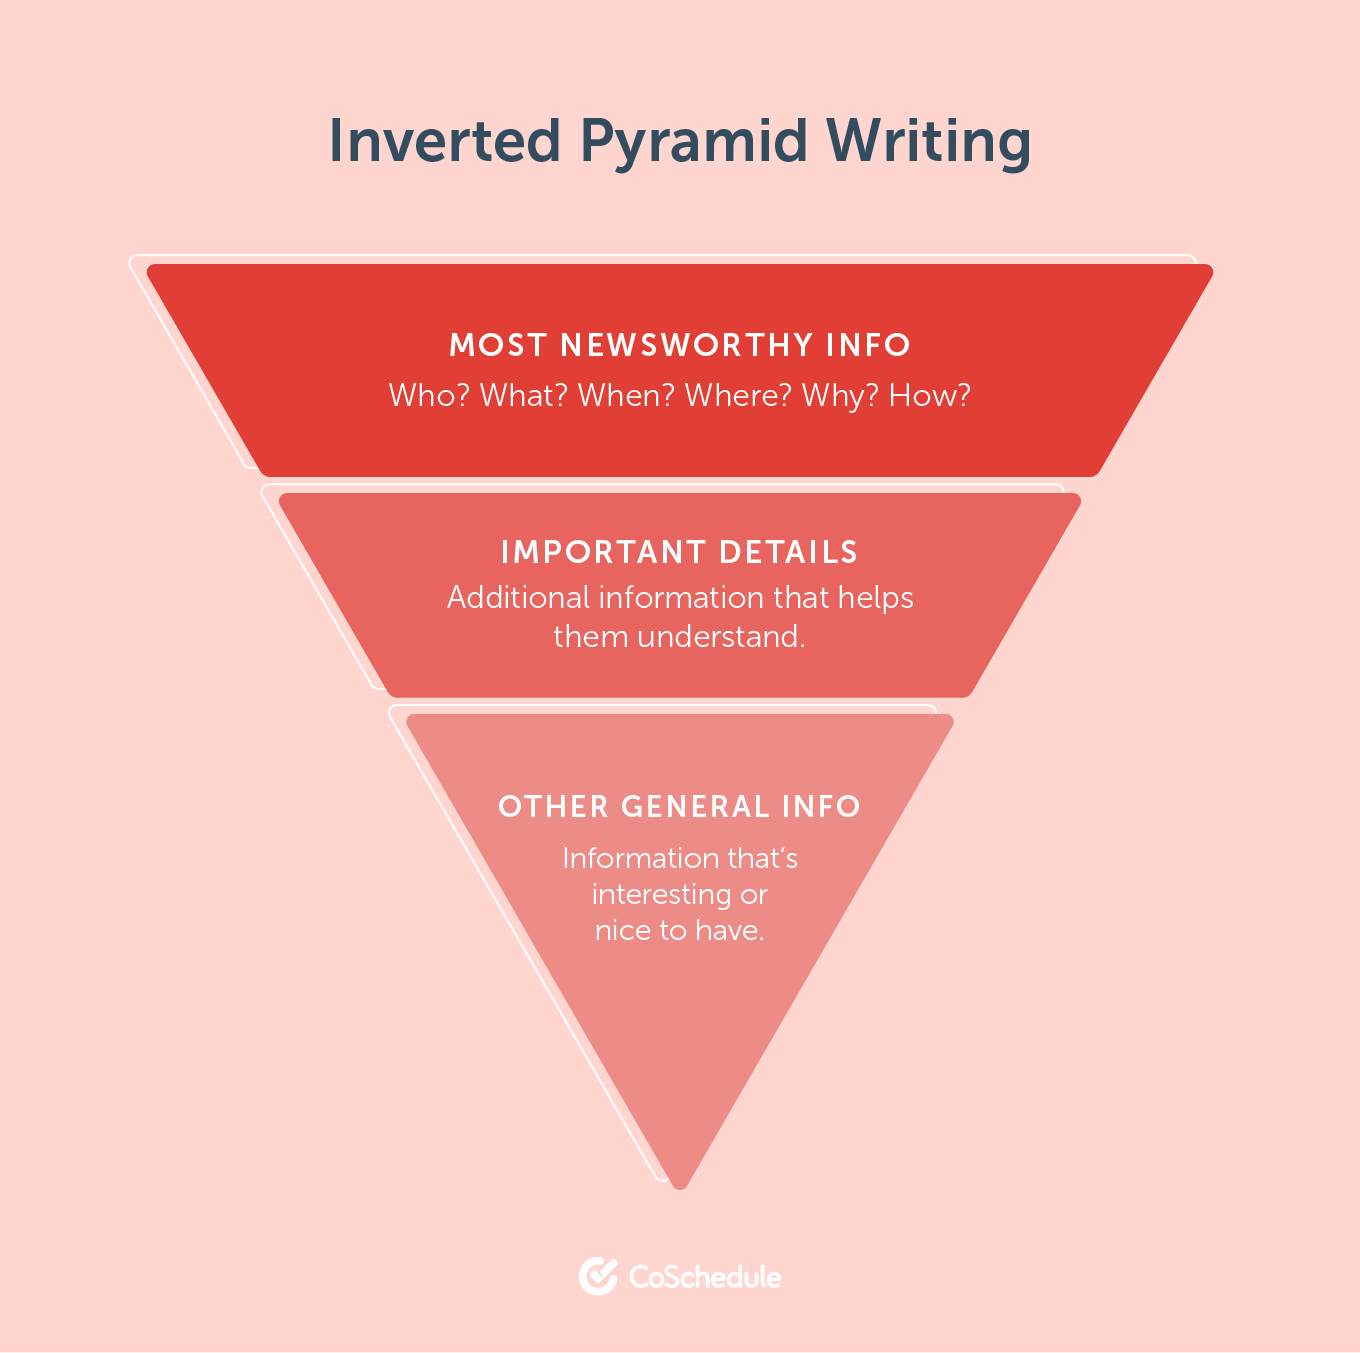 Inverted Pyramid Writing to help with writing organization